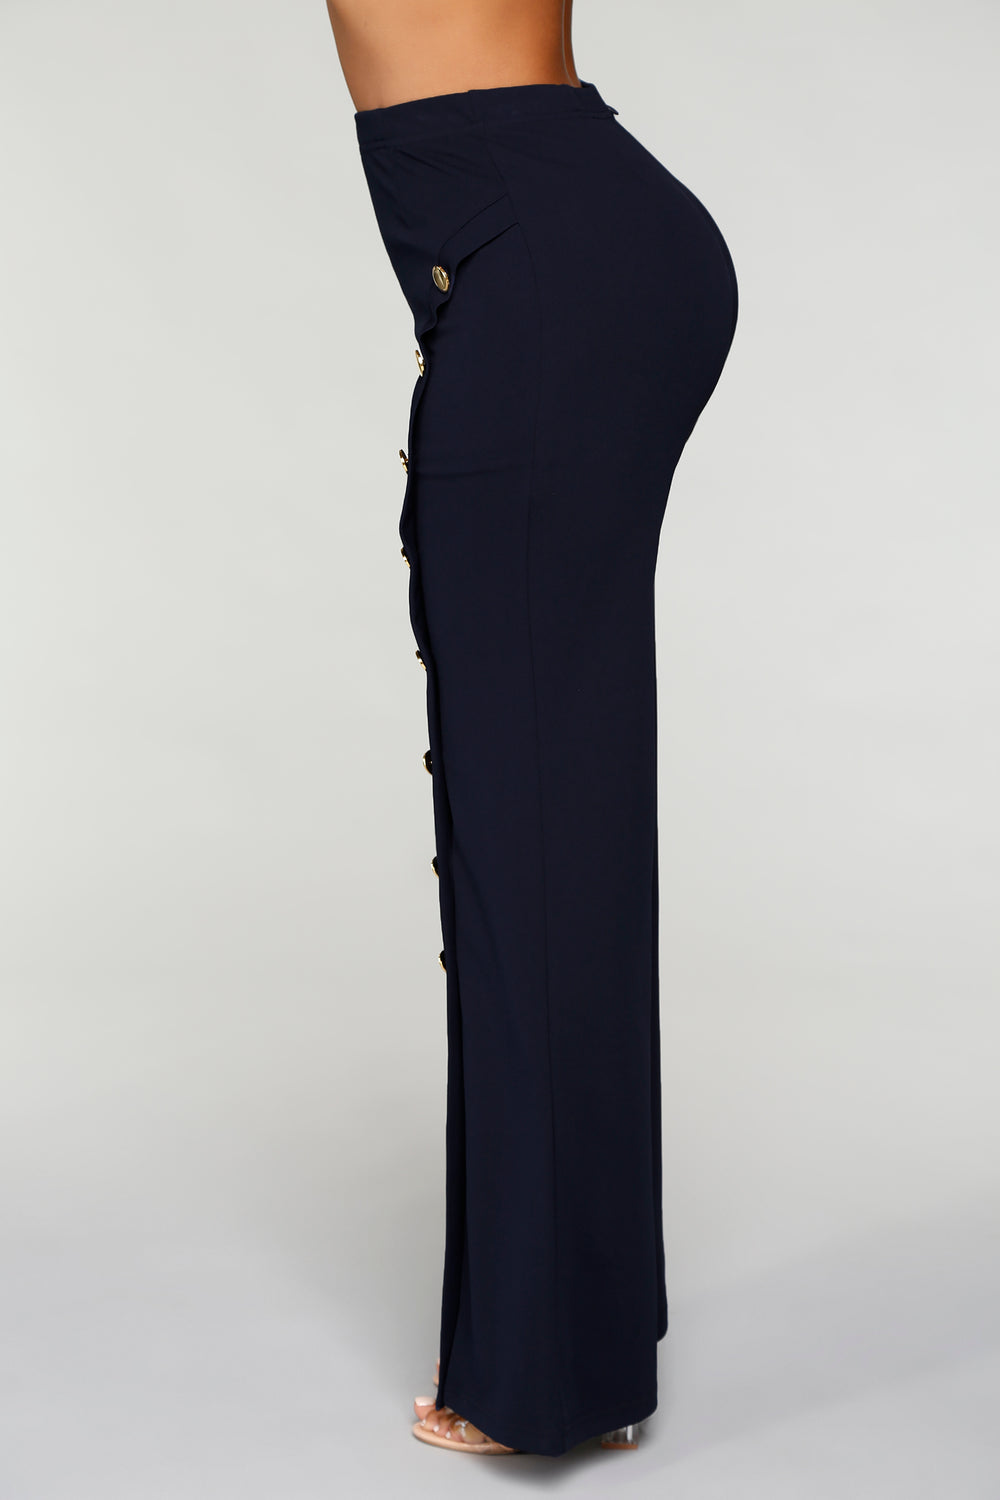 Flare My Button Pants - Navy